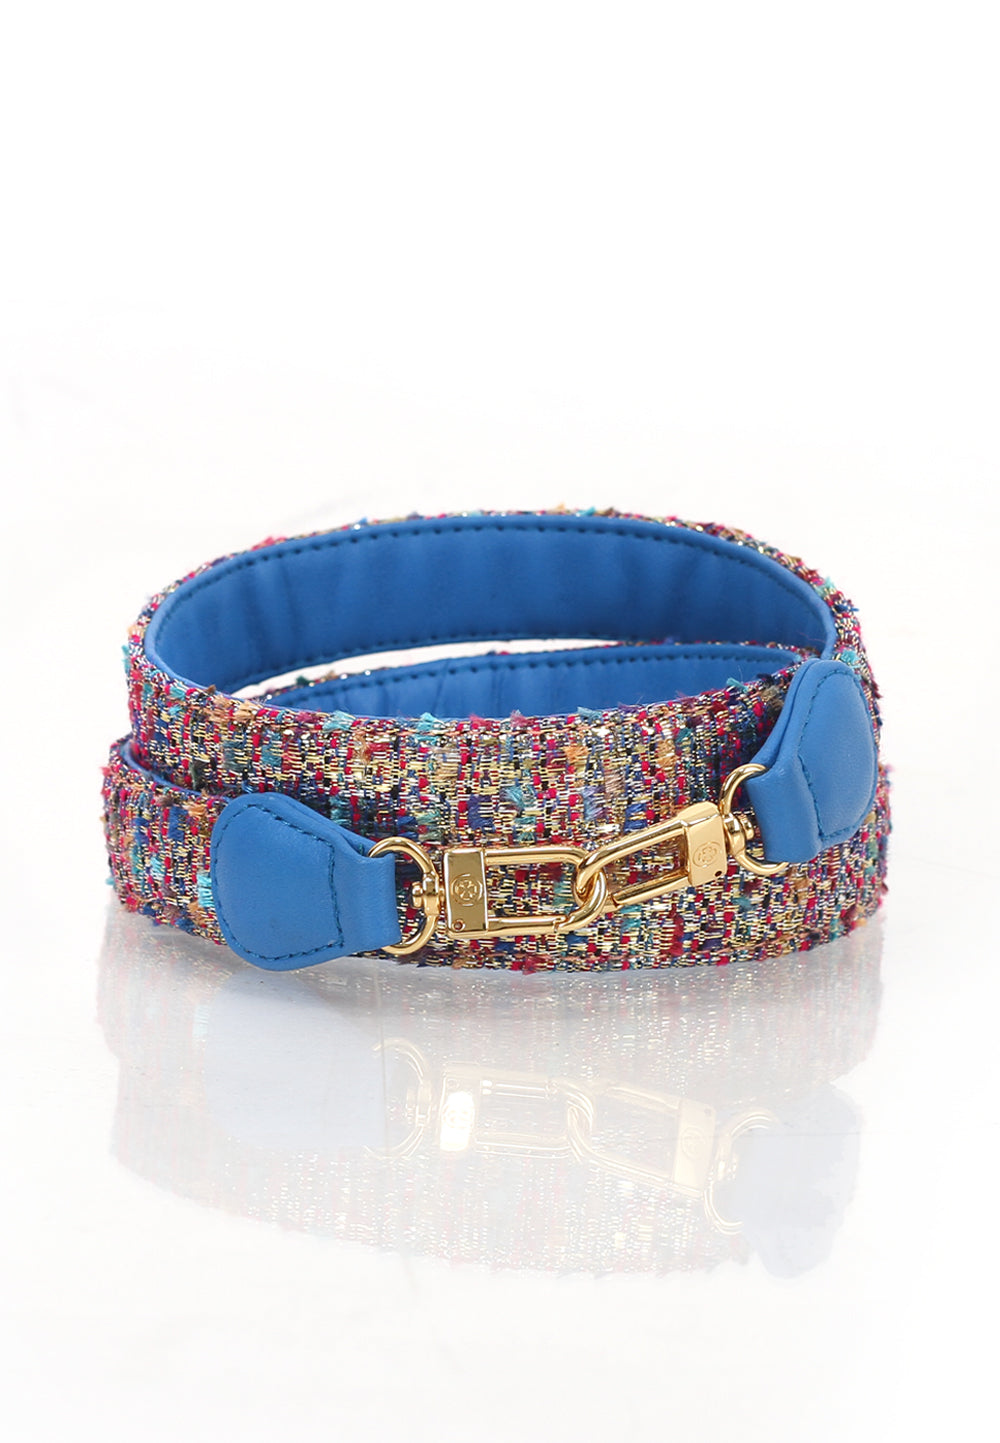 Le-Petit Calfskin Leather Strap (Blue Tweed)